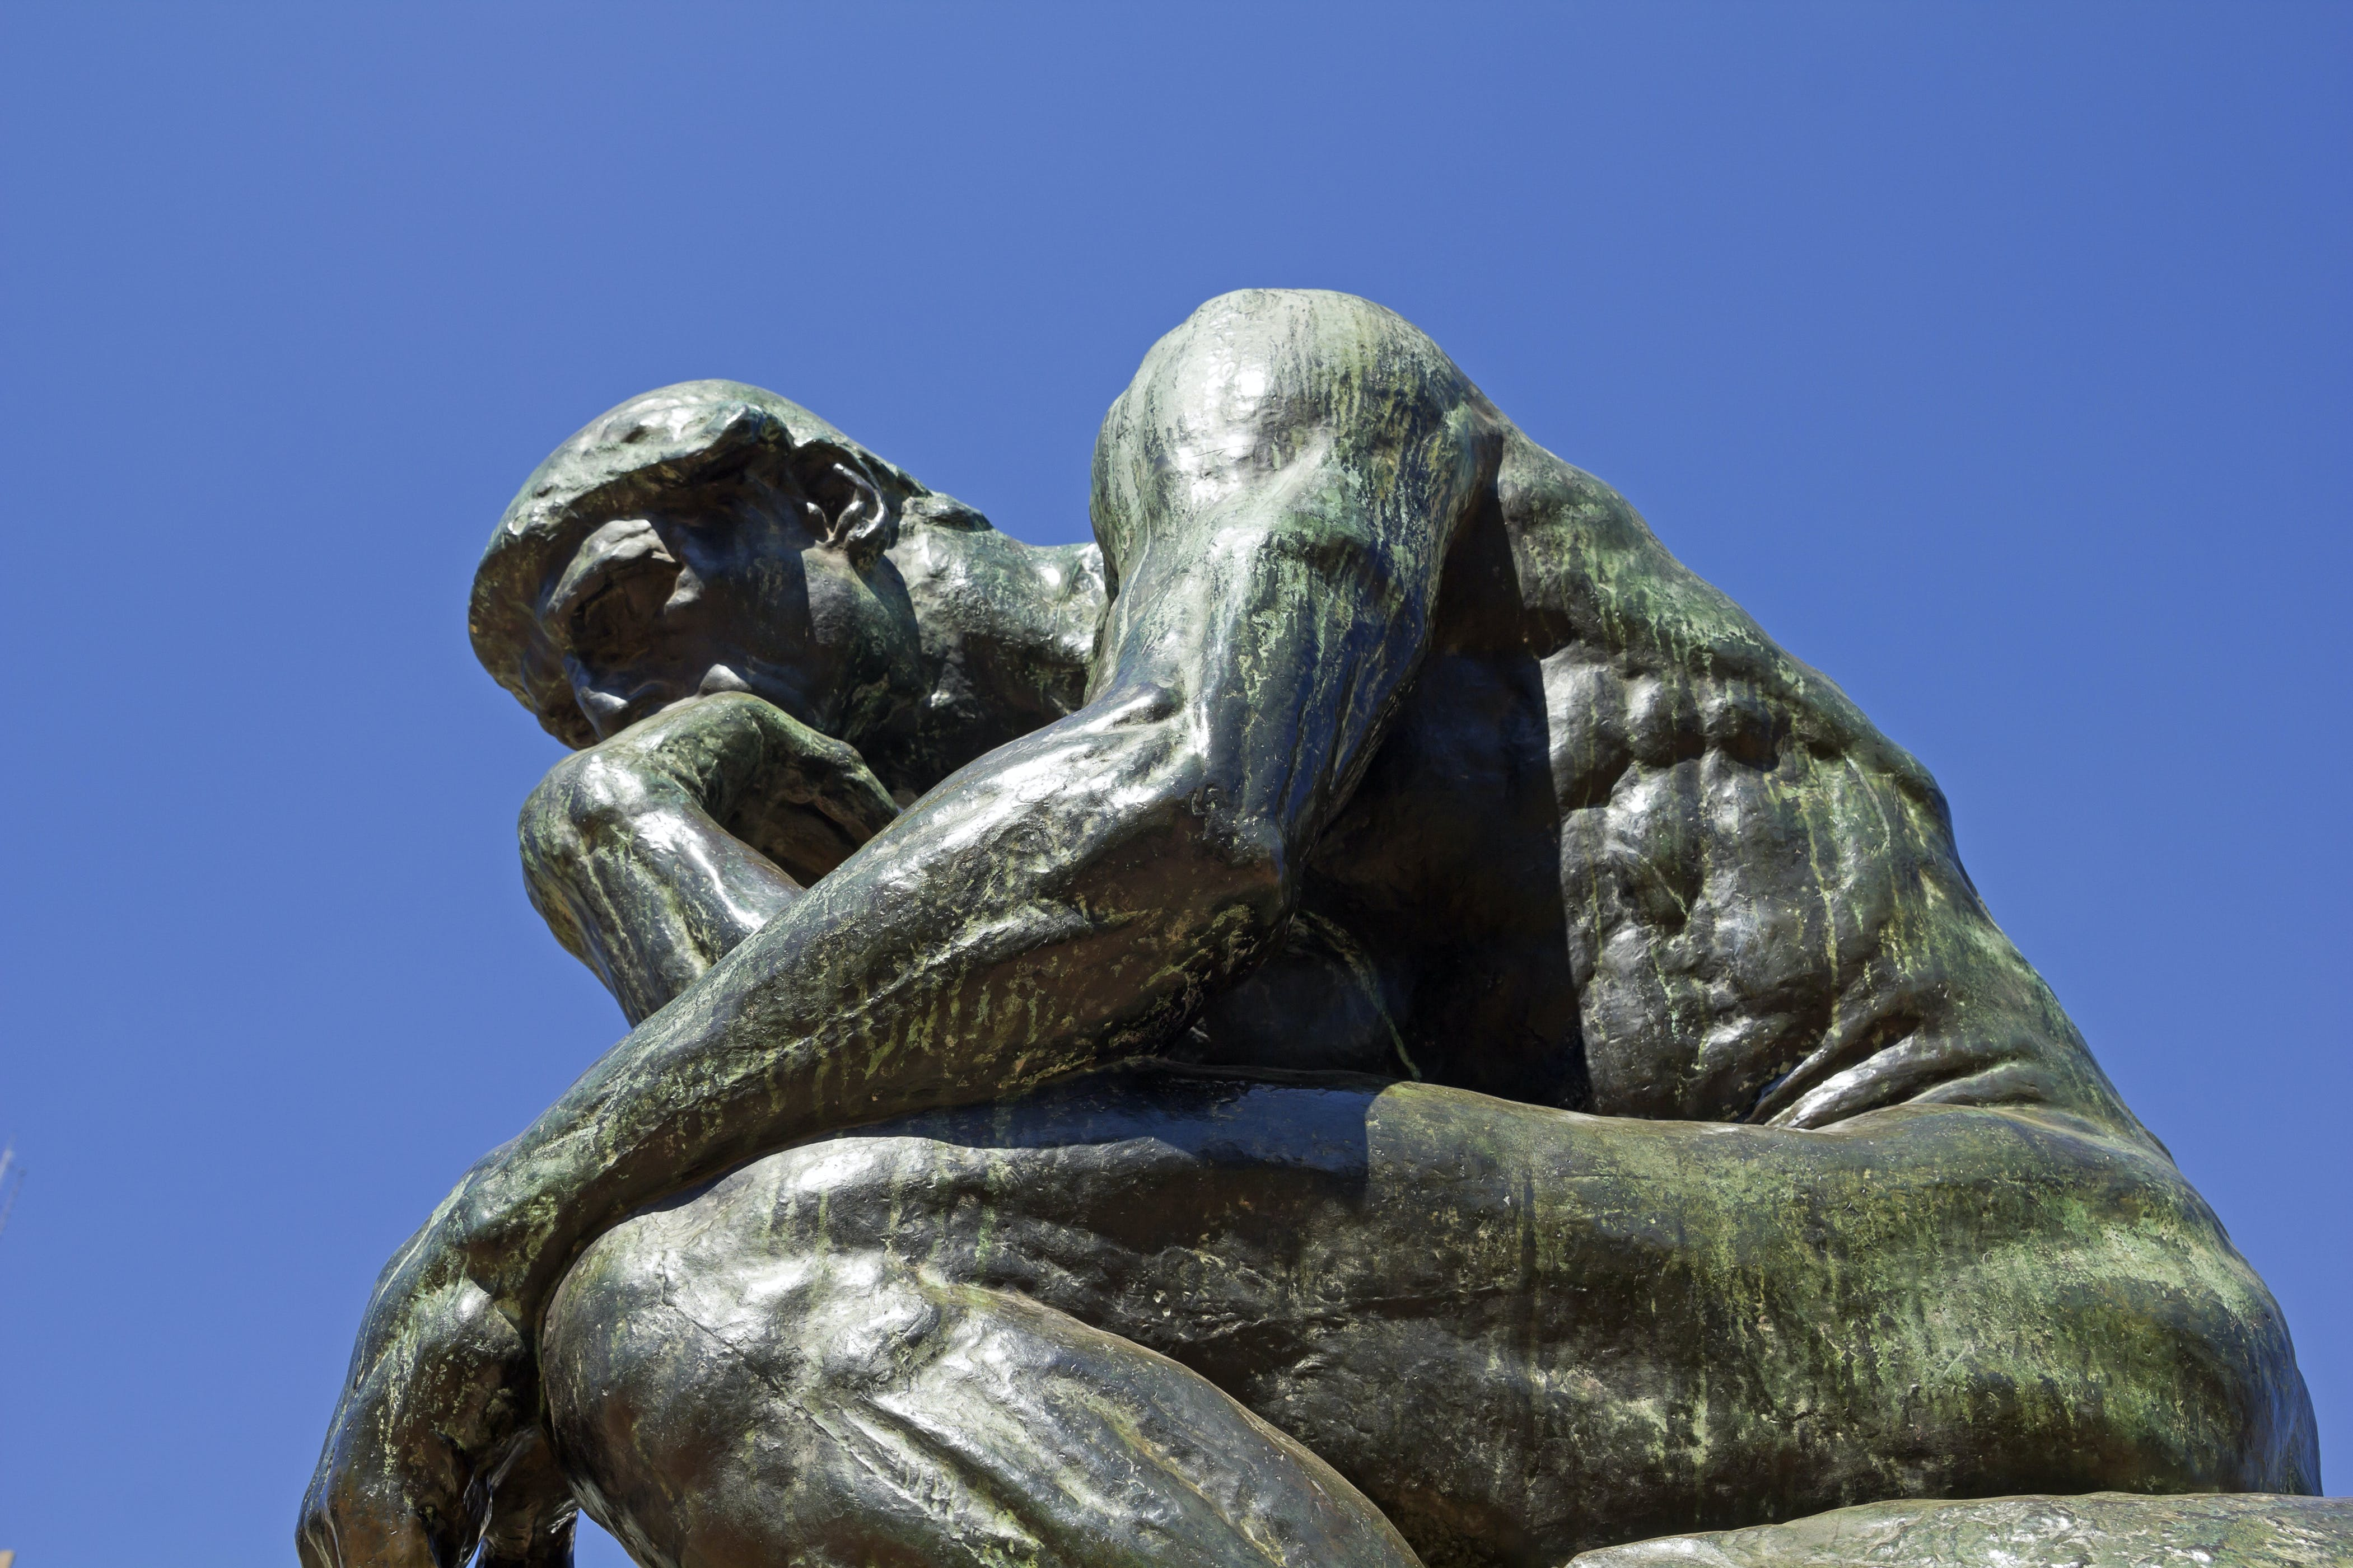 The Thinker by Rodin-second cast in the original cast and signed by Rodin himself in Buenos Aires, Argentina.